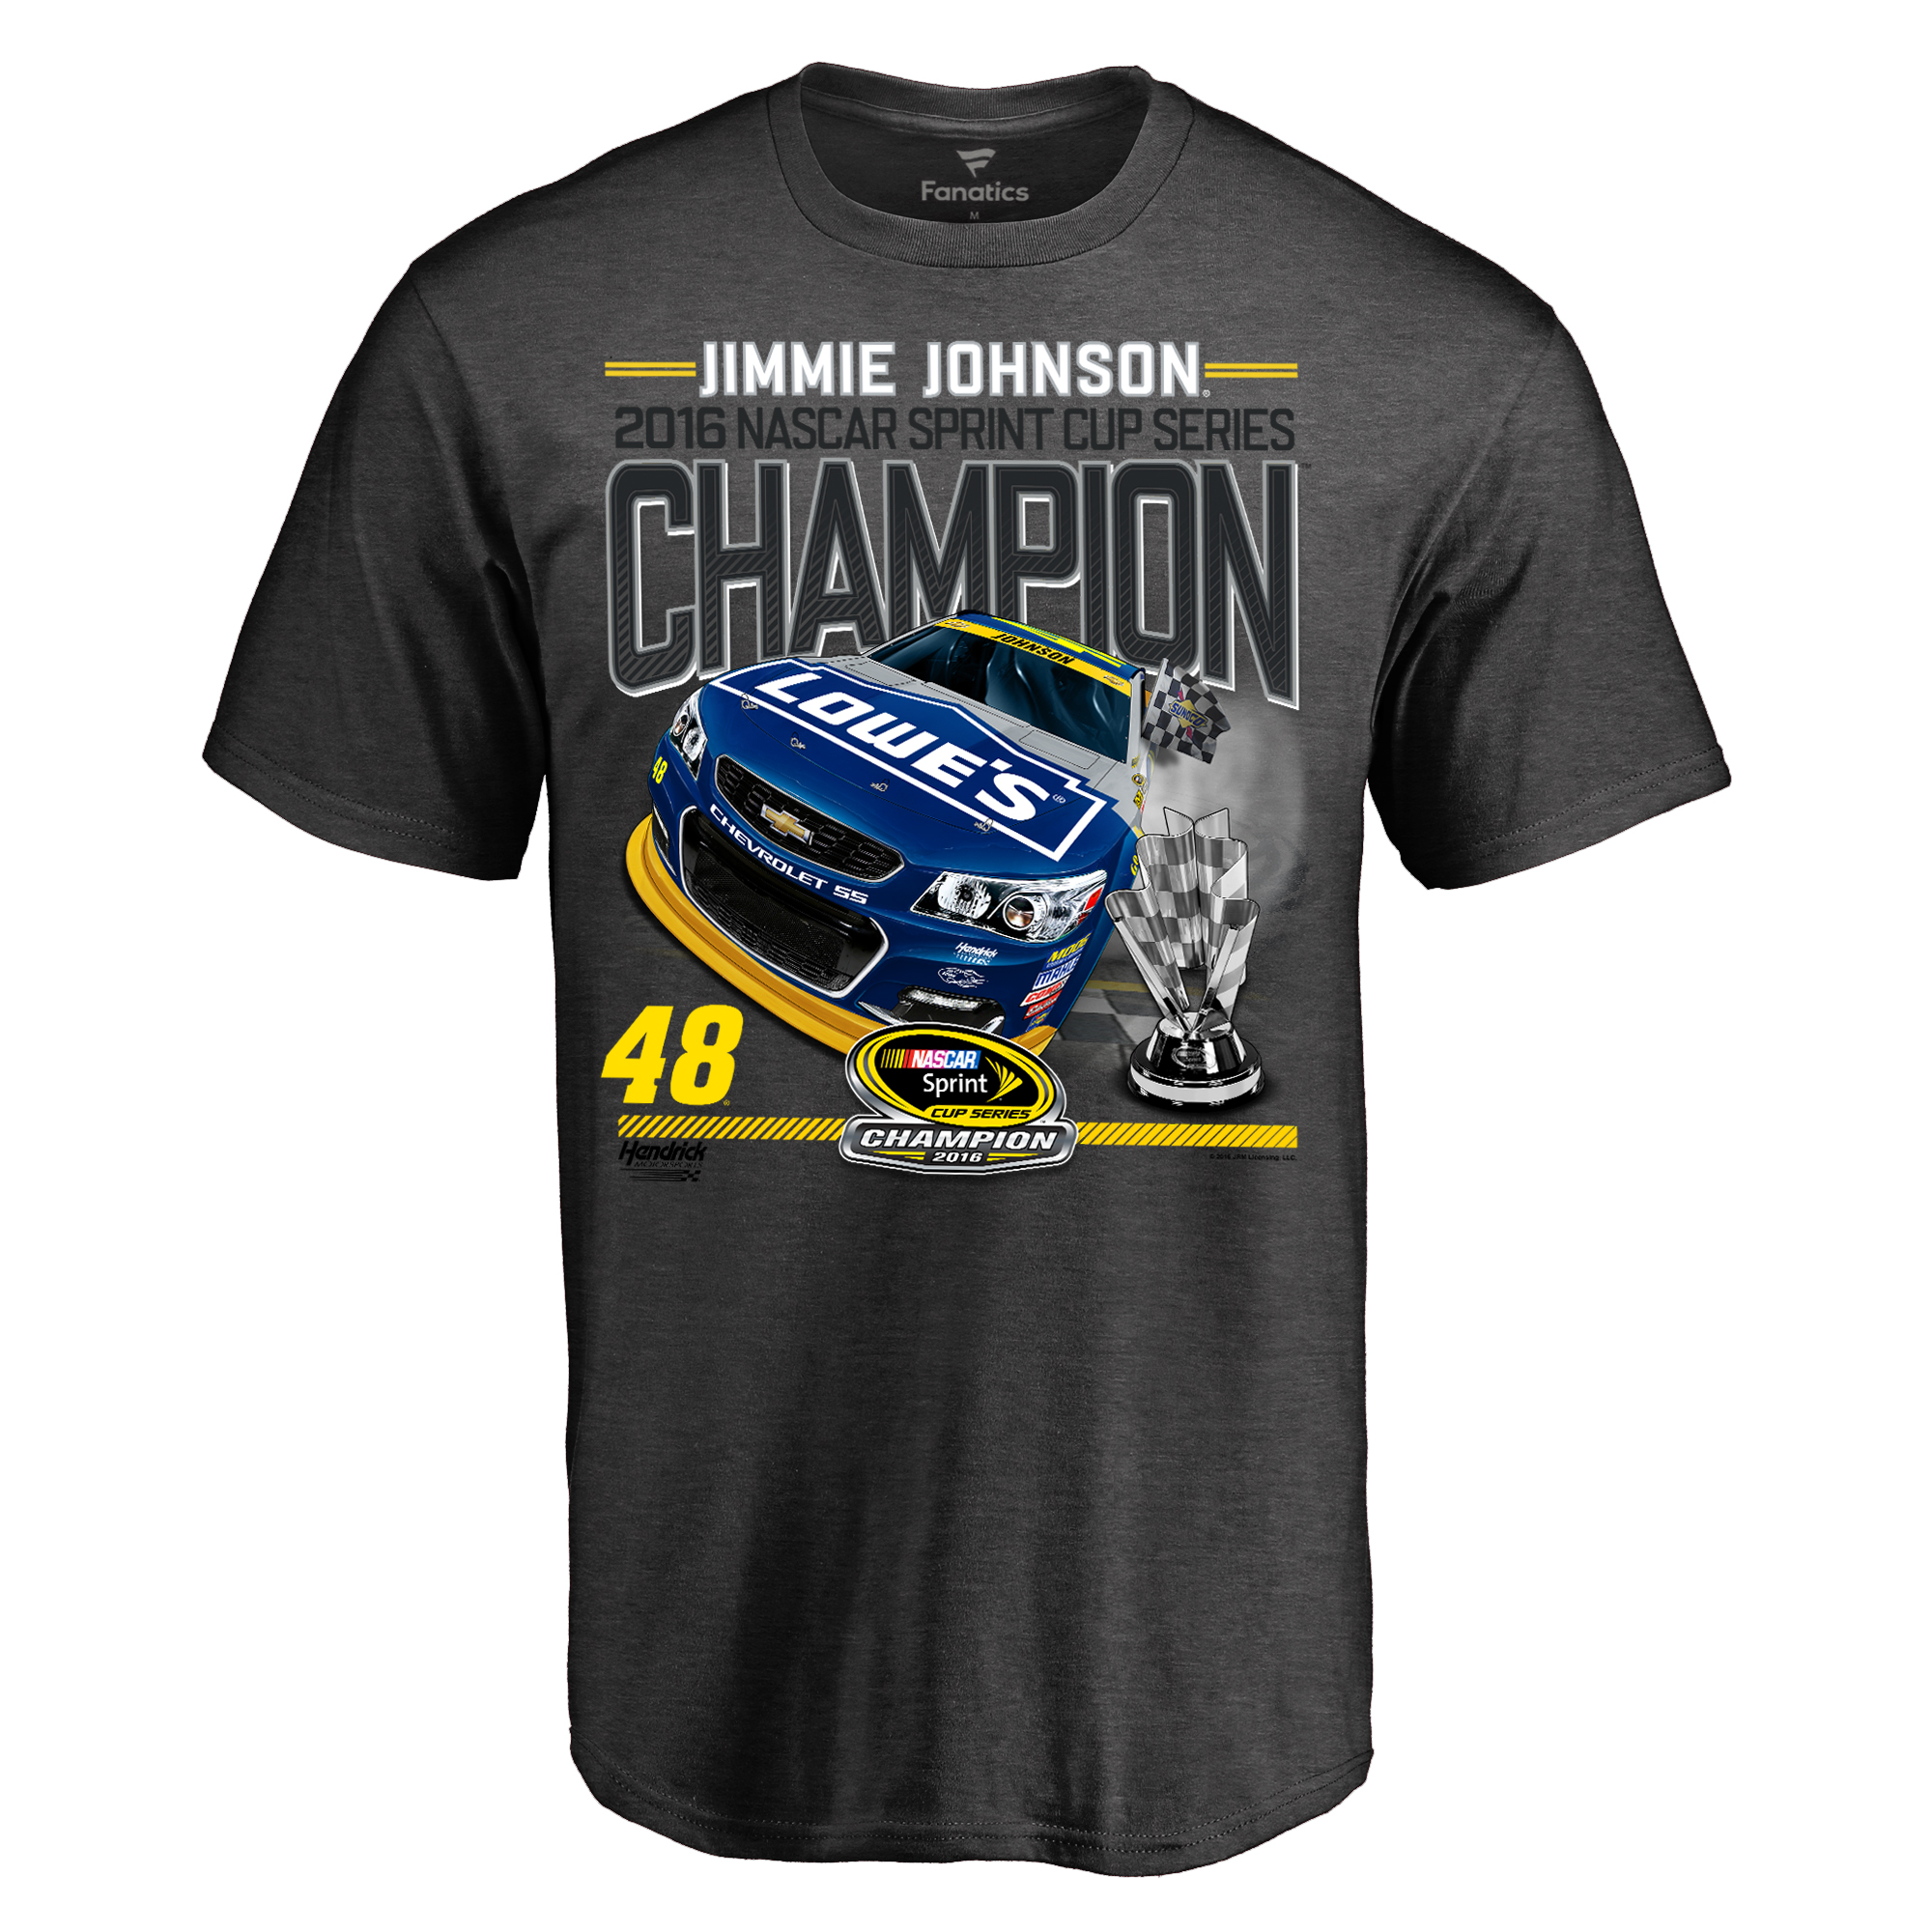 Jimmie Johnson 2016 Sprint Cup Champion Official T-Shirt - Heathered Gray